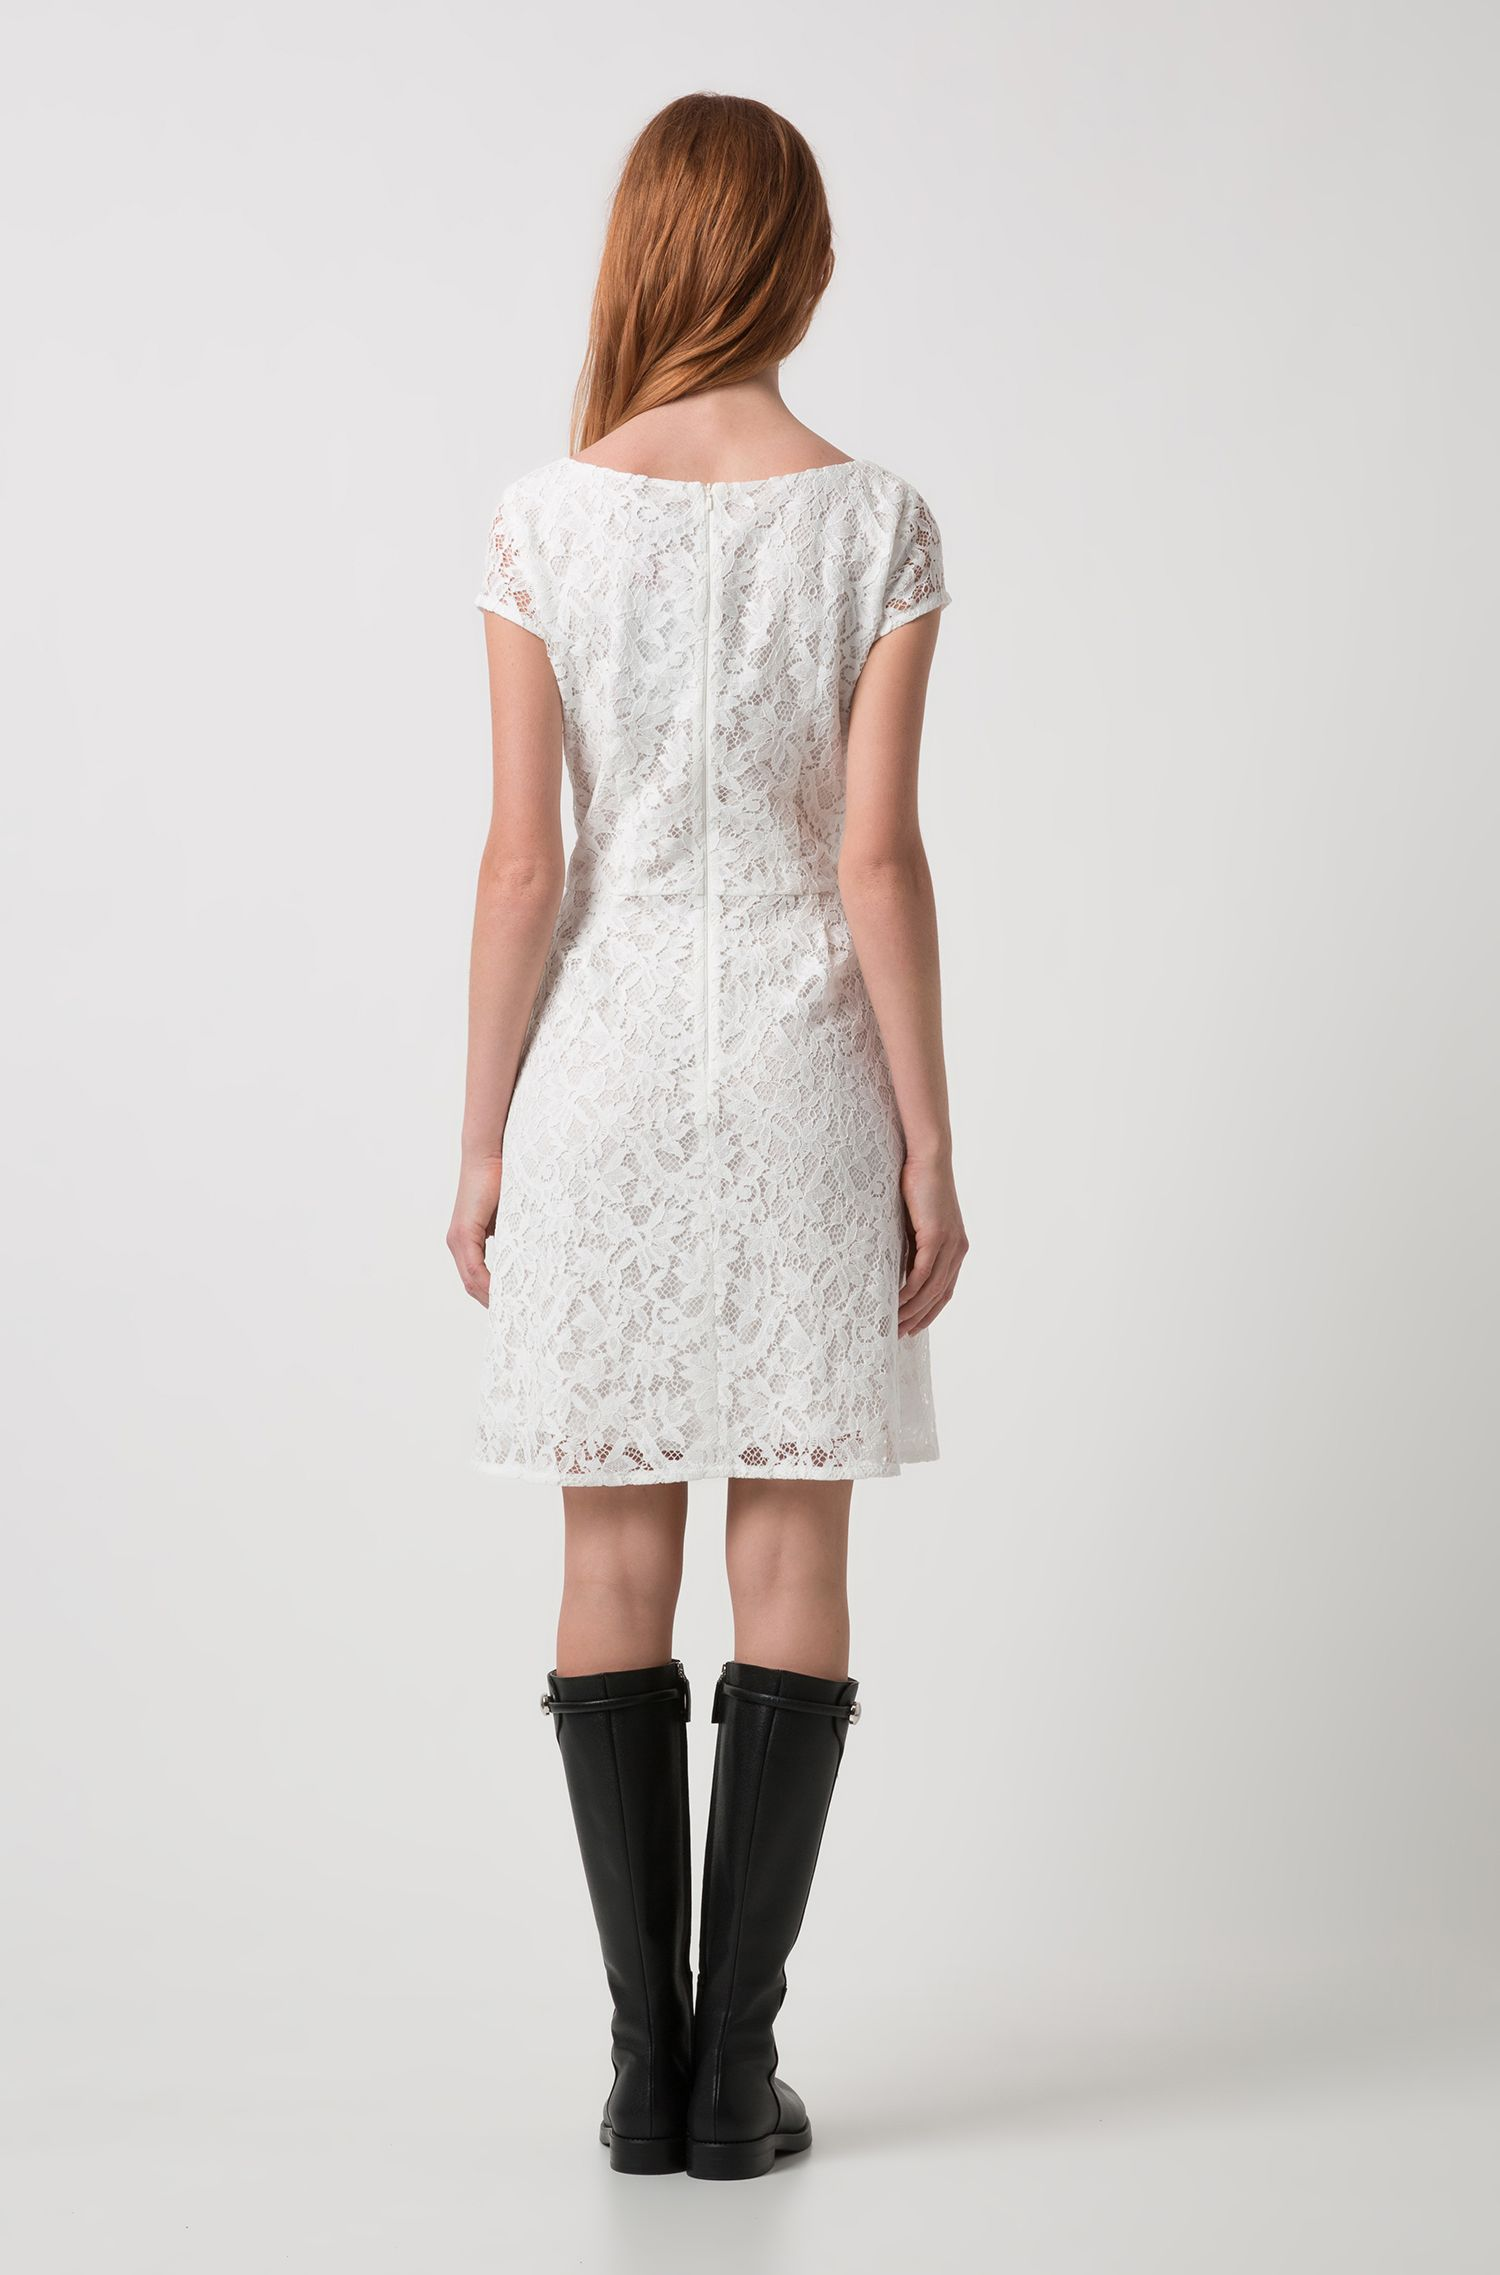 Scoop-neck A-line dress in floral lace, Natural